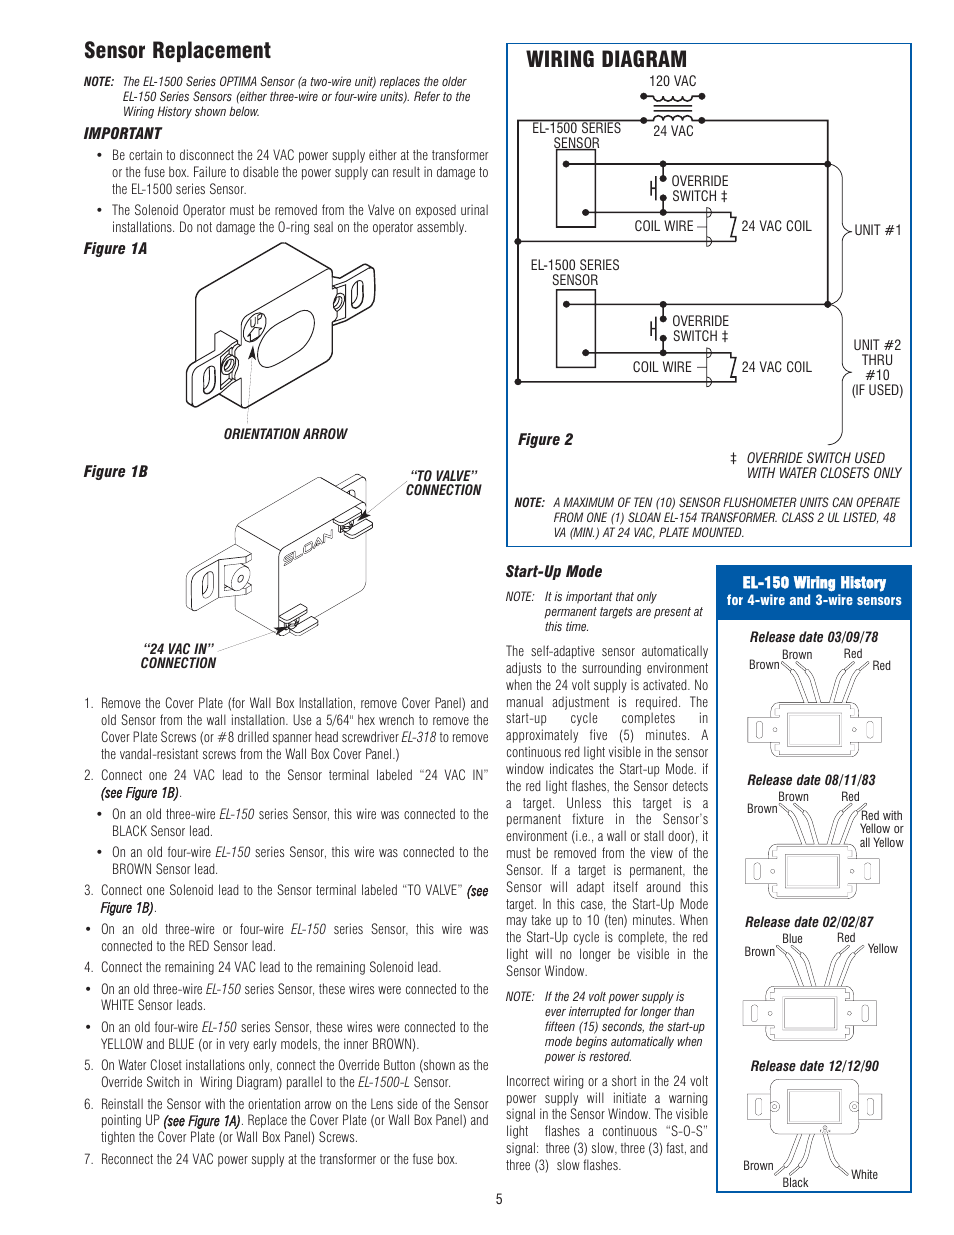 medium resolution of sensor replacement wiring diagram optima company el 1500 user manual page 5 6